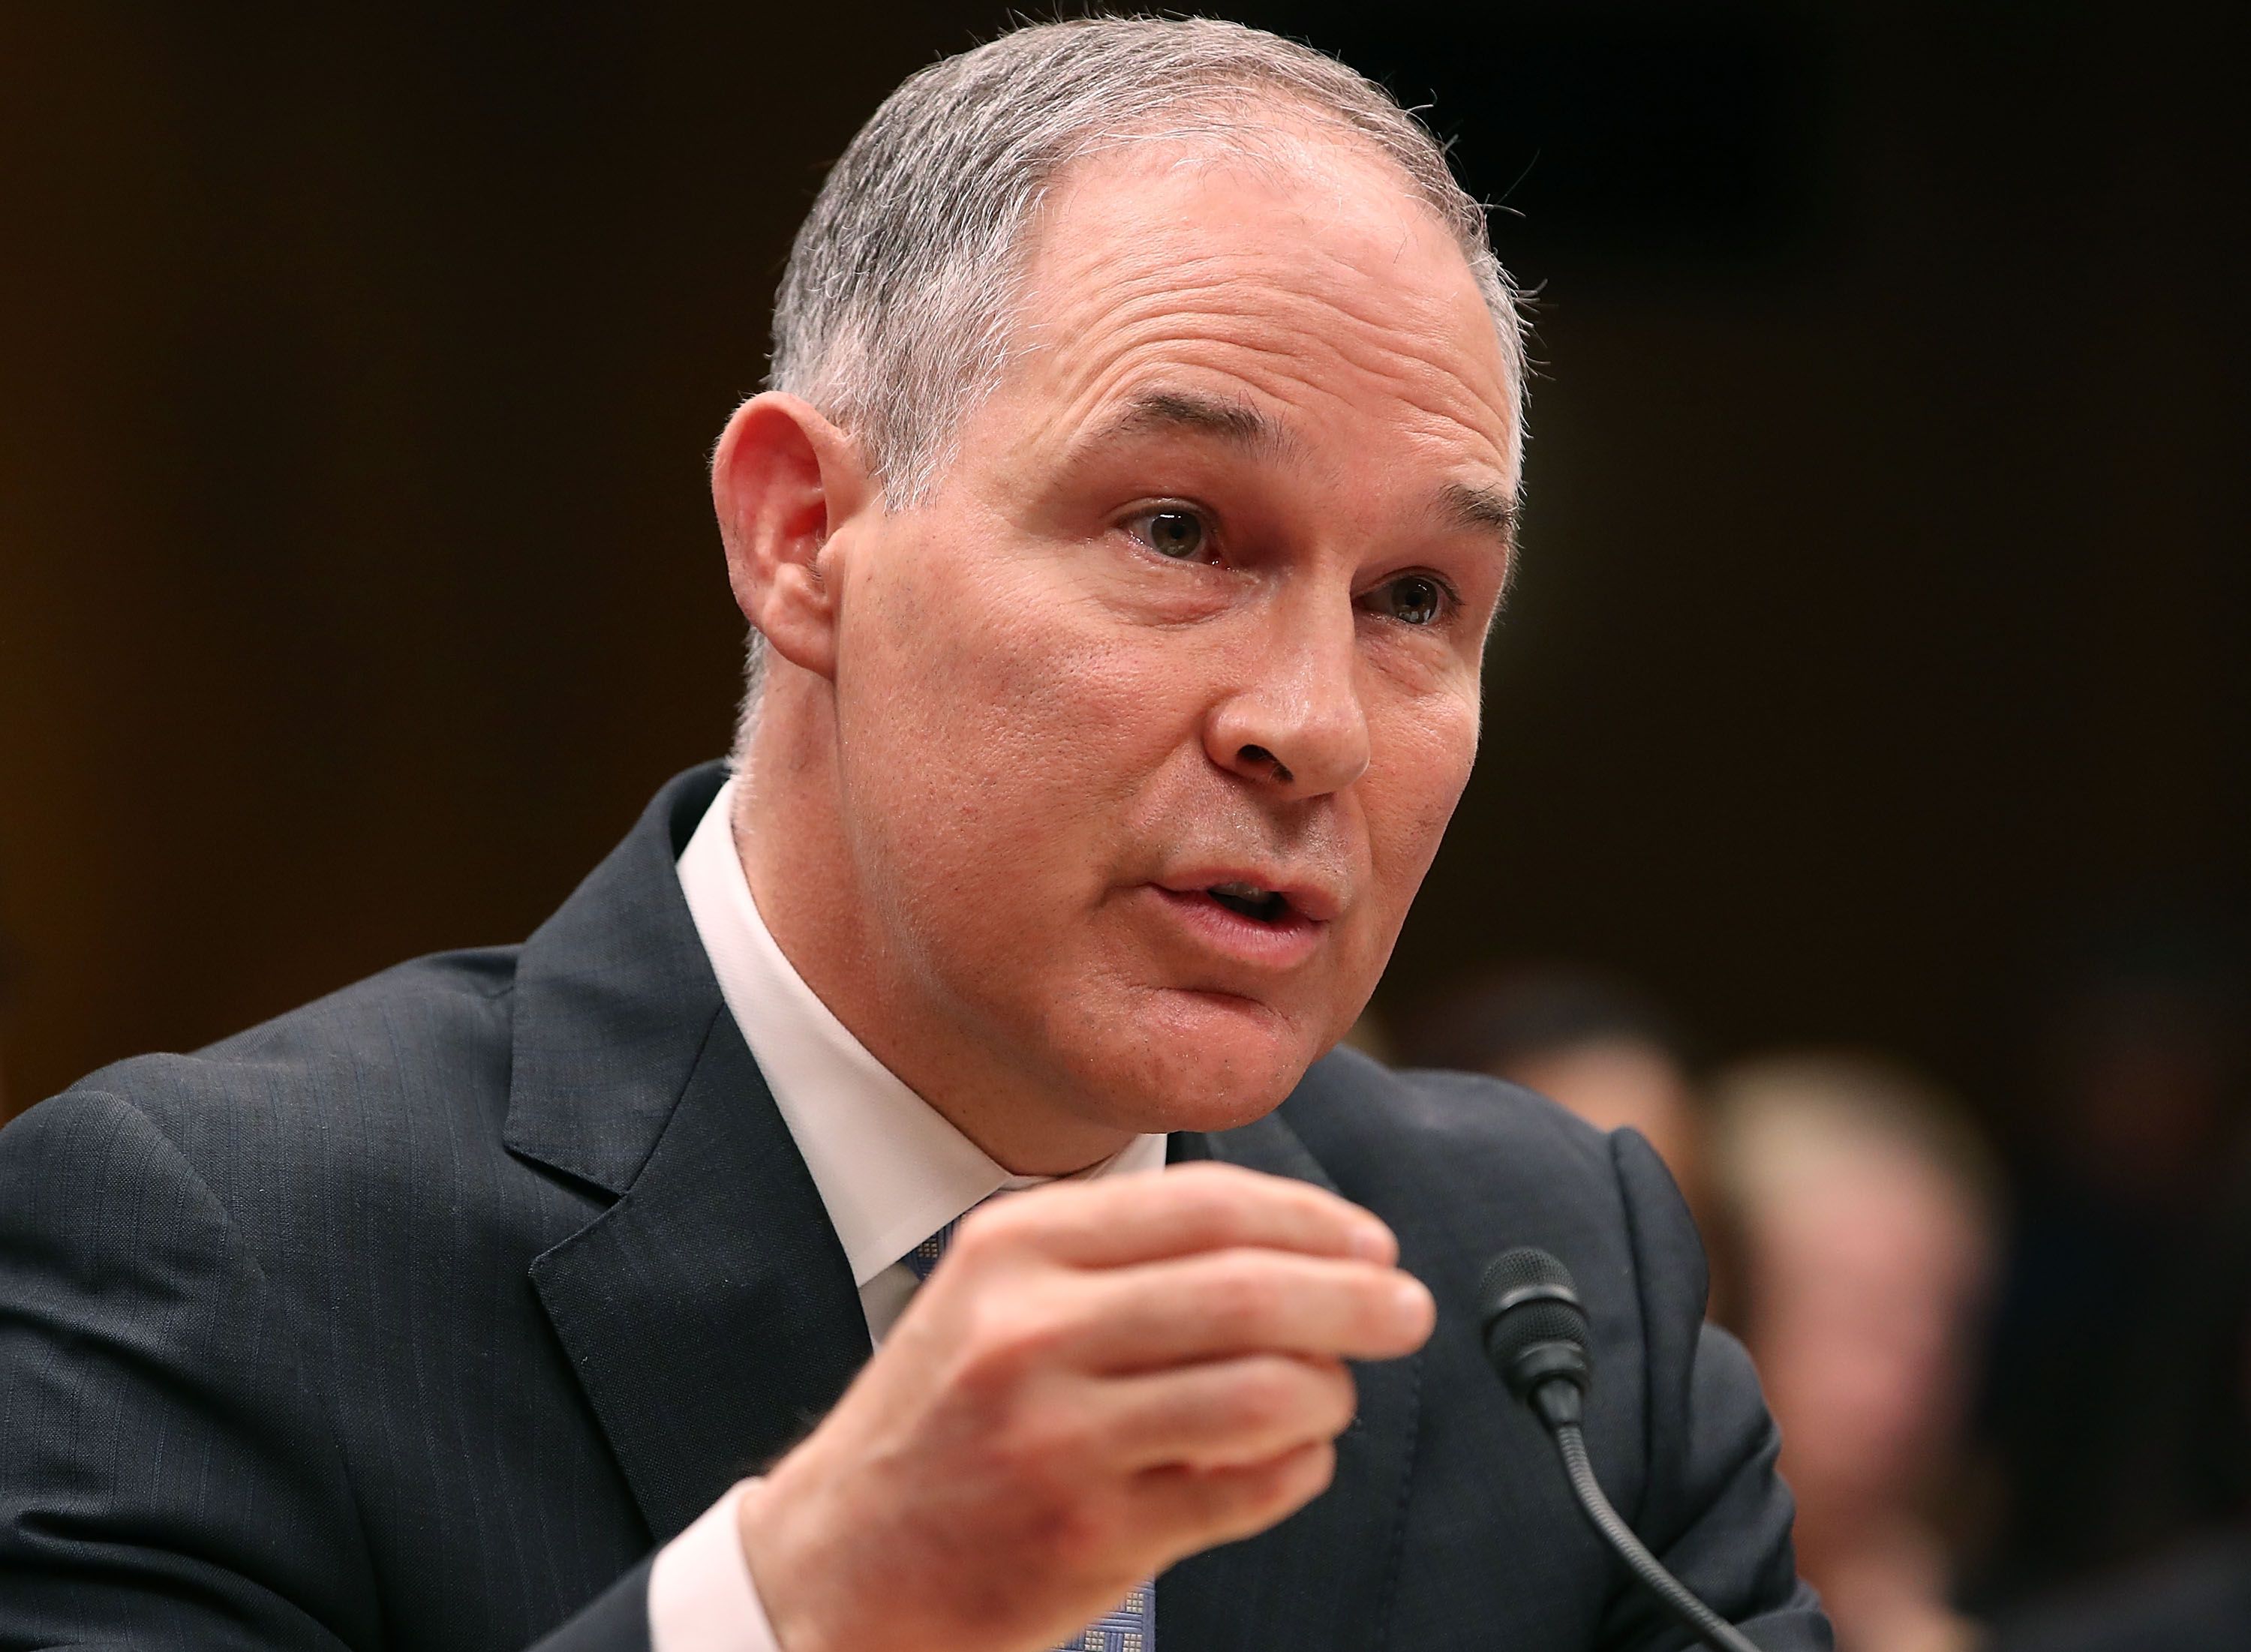 Scott Pruitt Ate at the White House Mess So Often They Asked Him to Stop